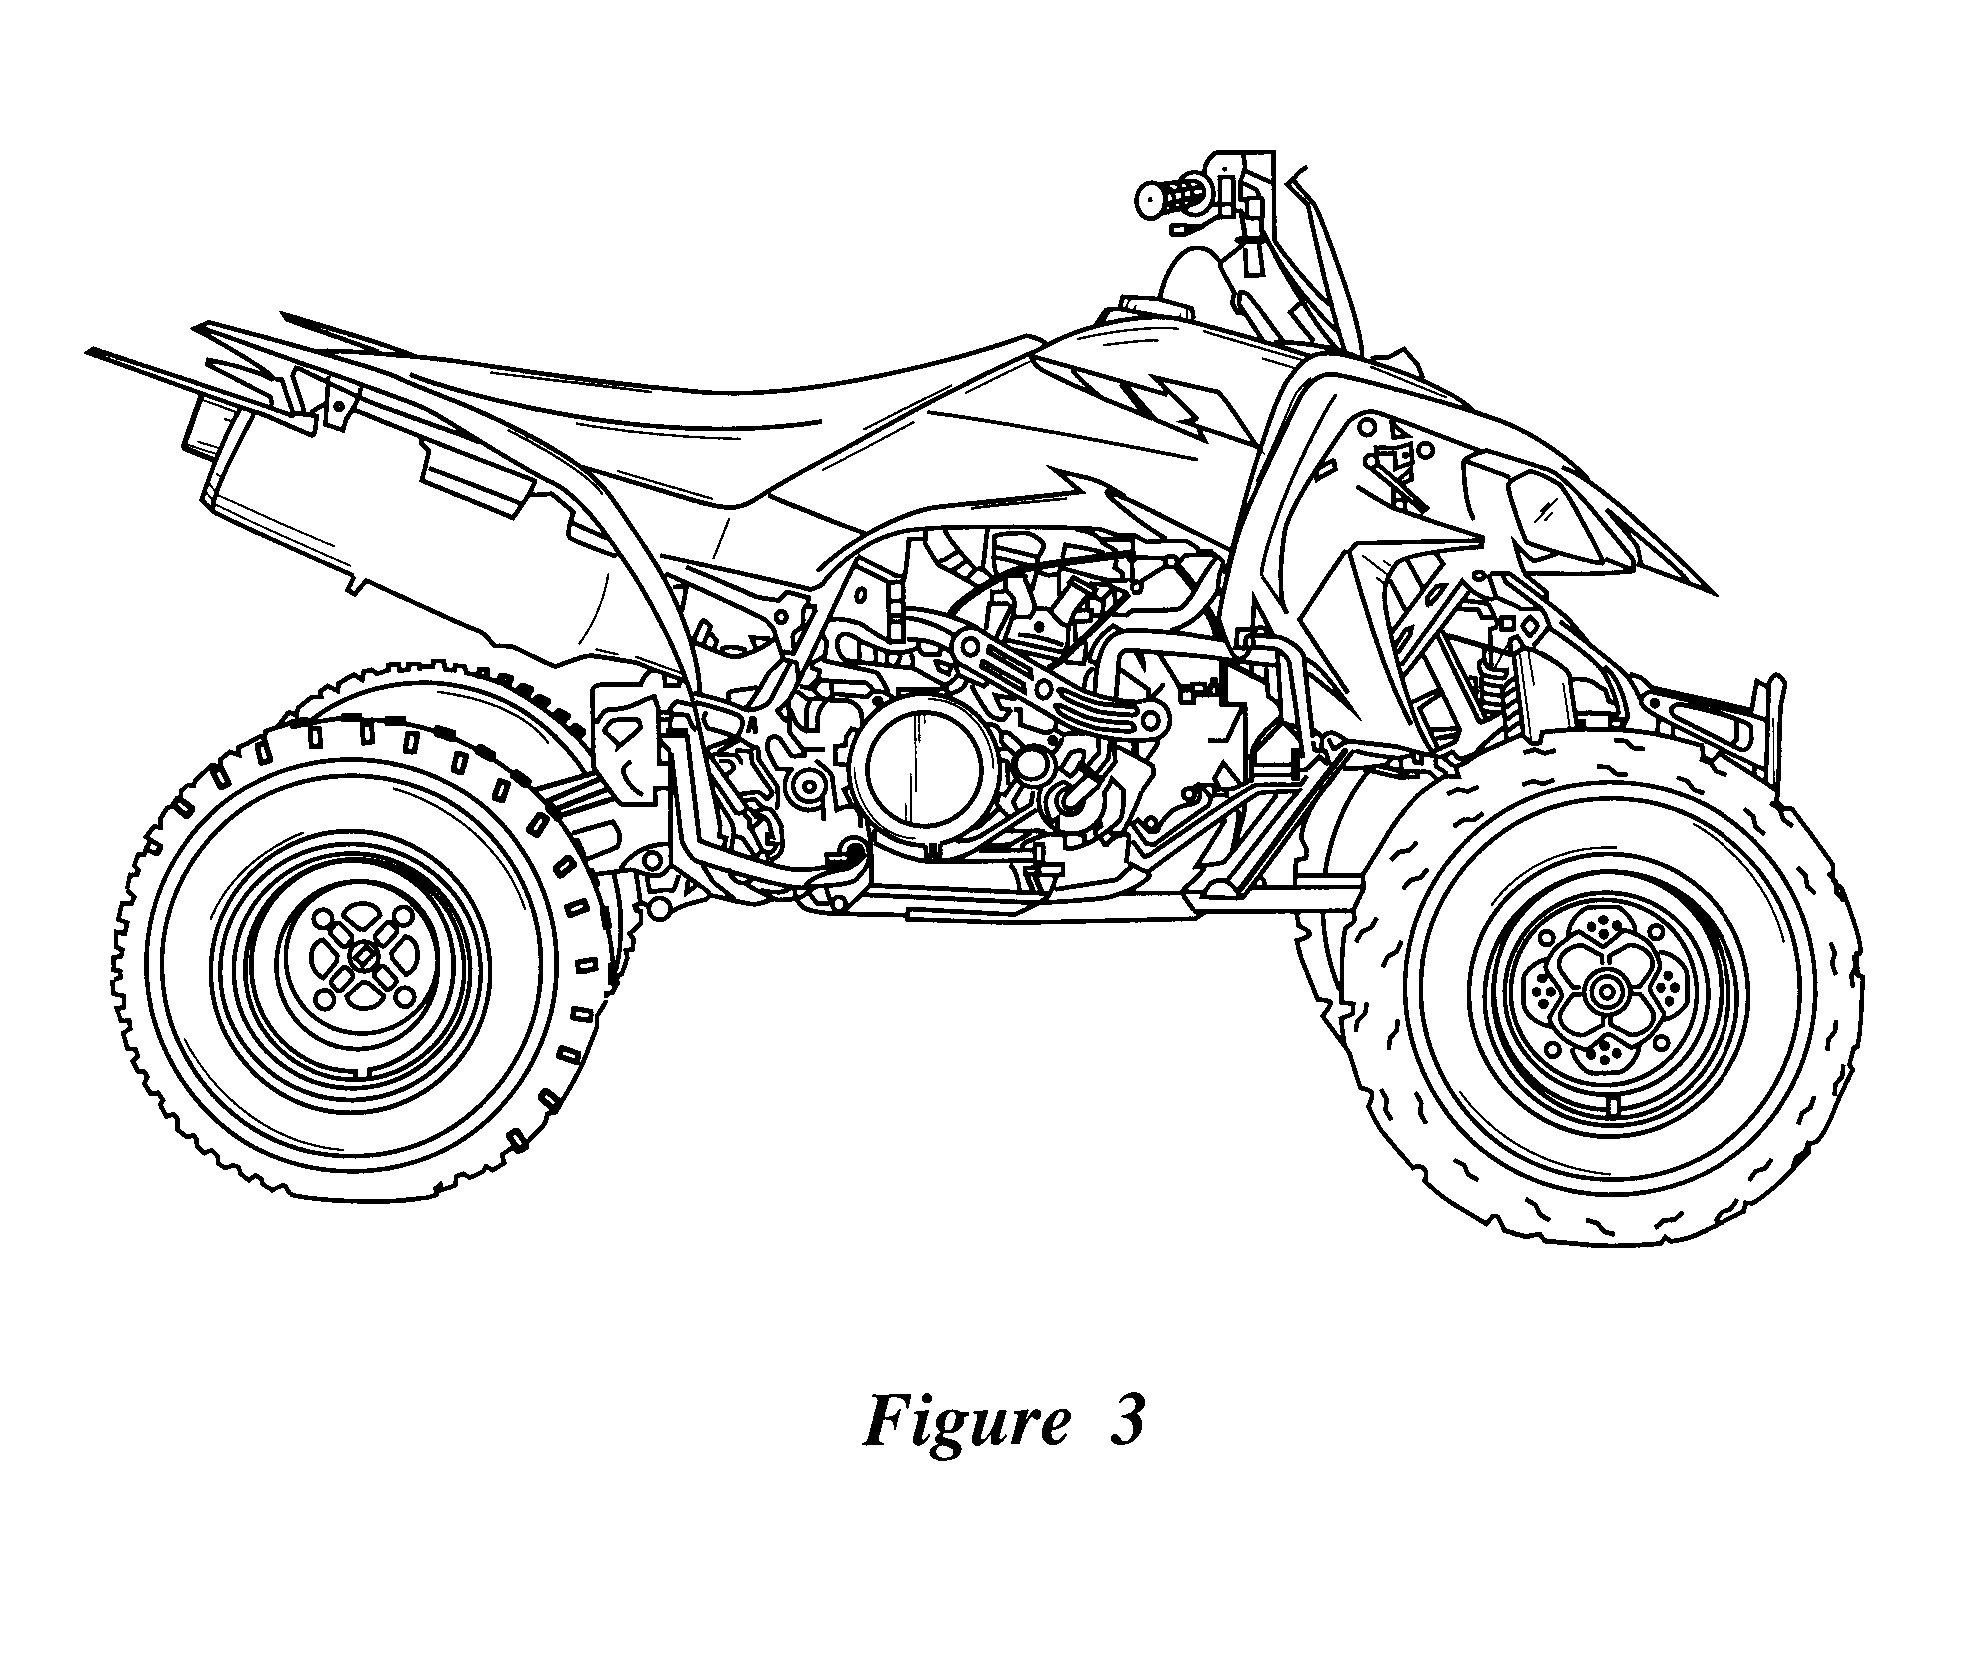 Yamaha Ttr 125 Wiring Diagram moreover Showthread also Yamaha Rhino 700 Wiring Diagram besides Atv Coloring Pages besides 15182 Carb Help. on yamaha raptor 700